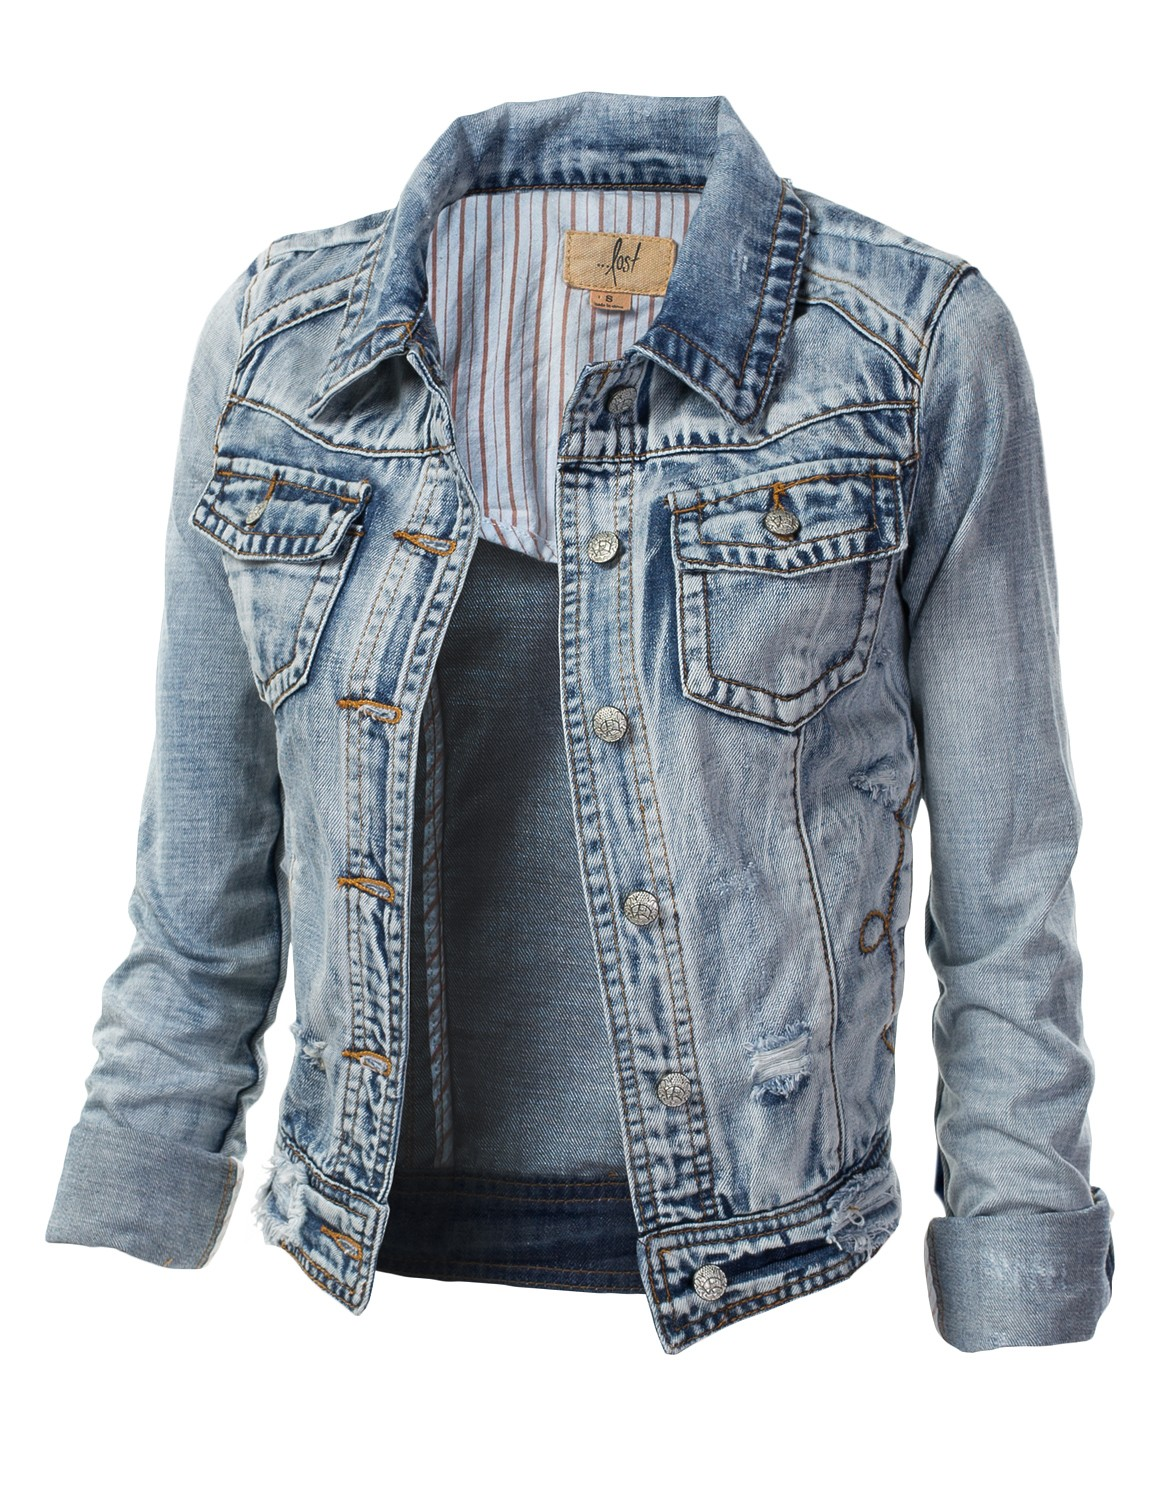 2016 Kot Ceket Modelleri ve Kombinleri Trend-Denim-Jacket-Women-Models